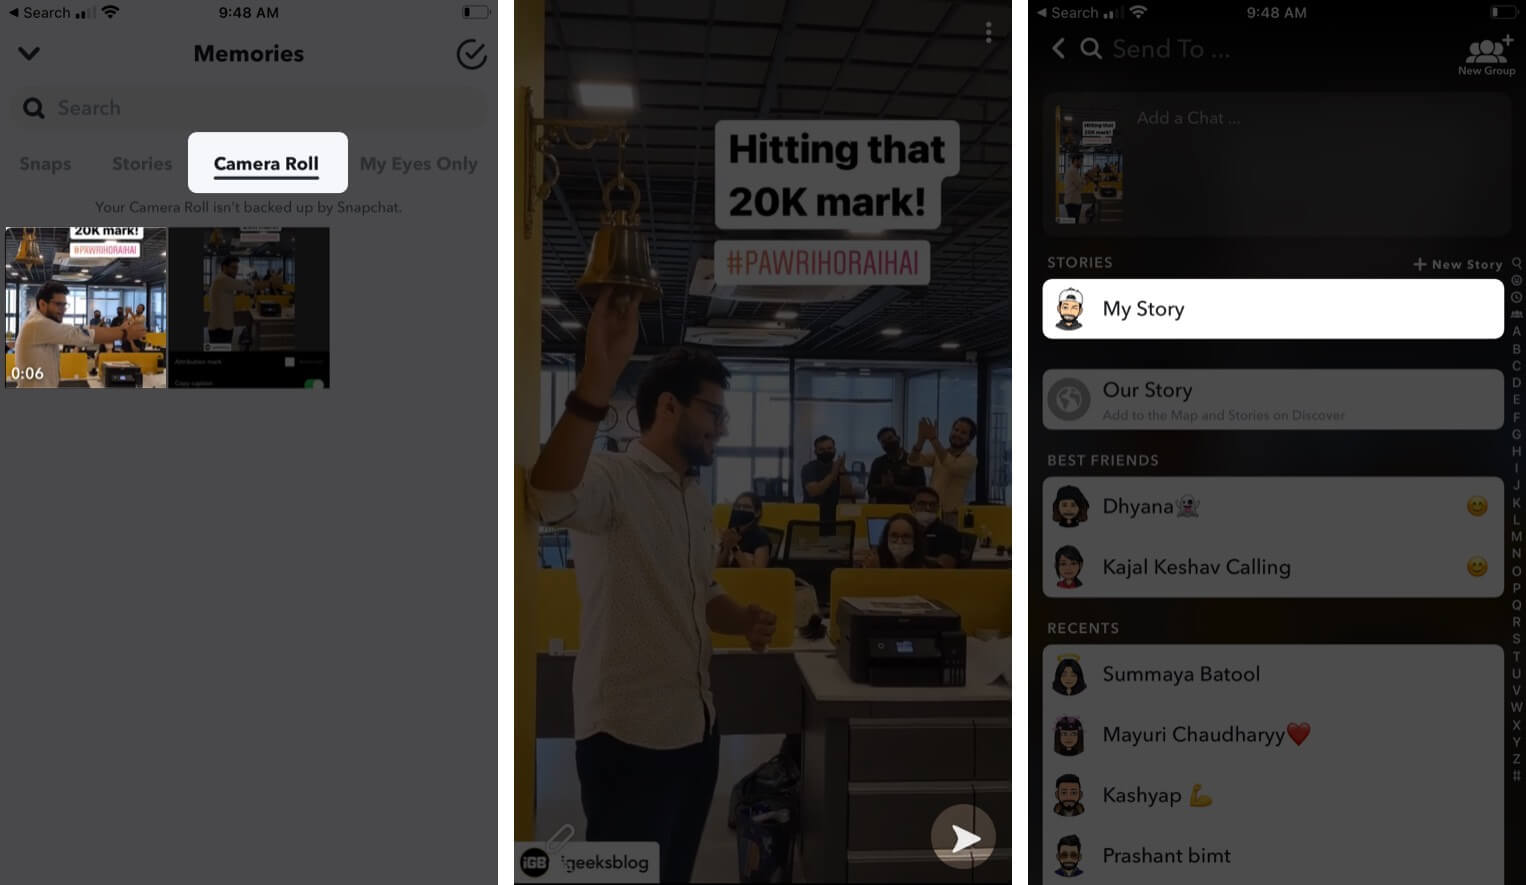 Add Instagram Stories to Snapchat on iPhone